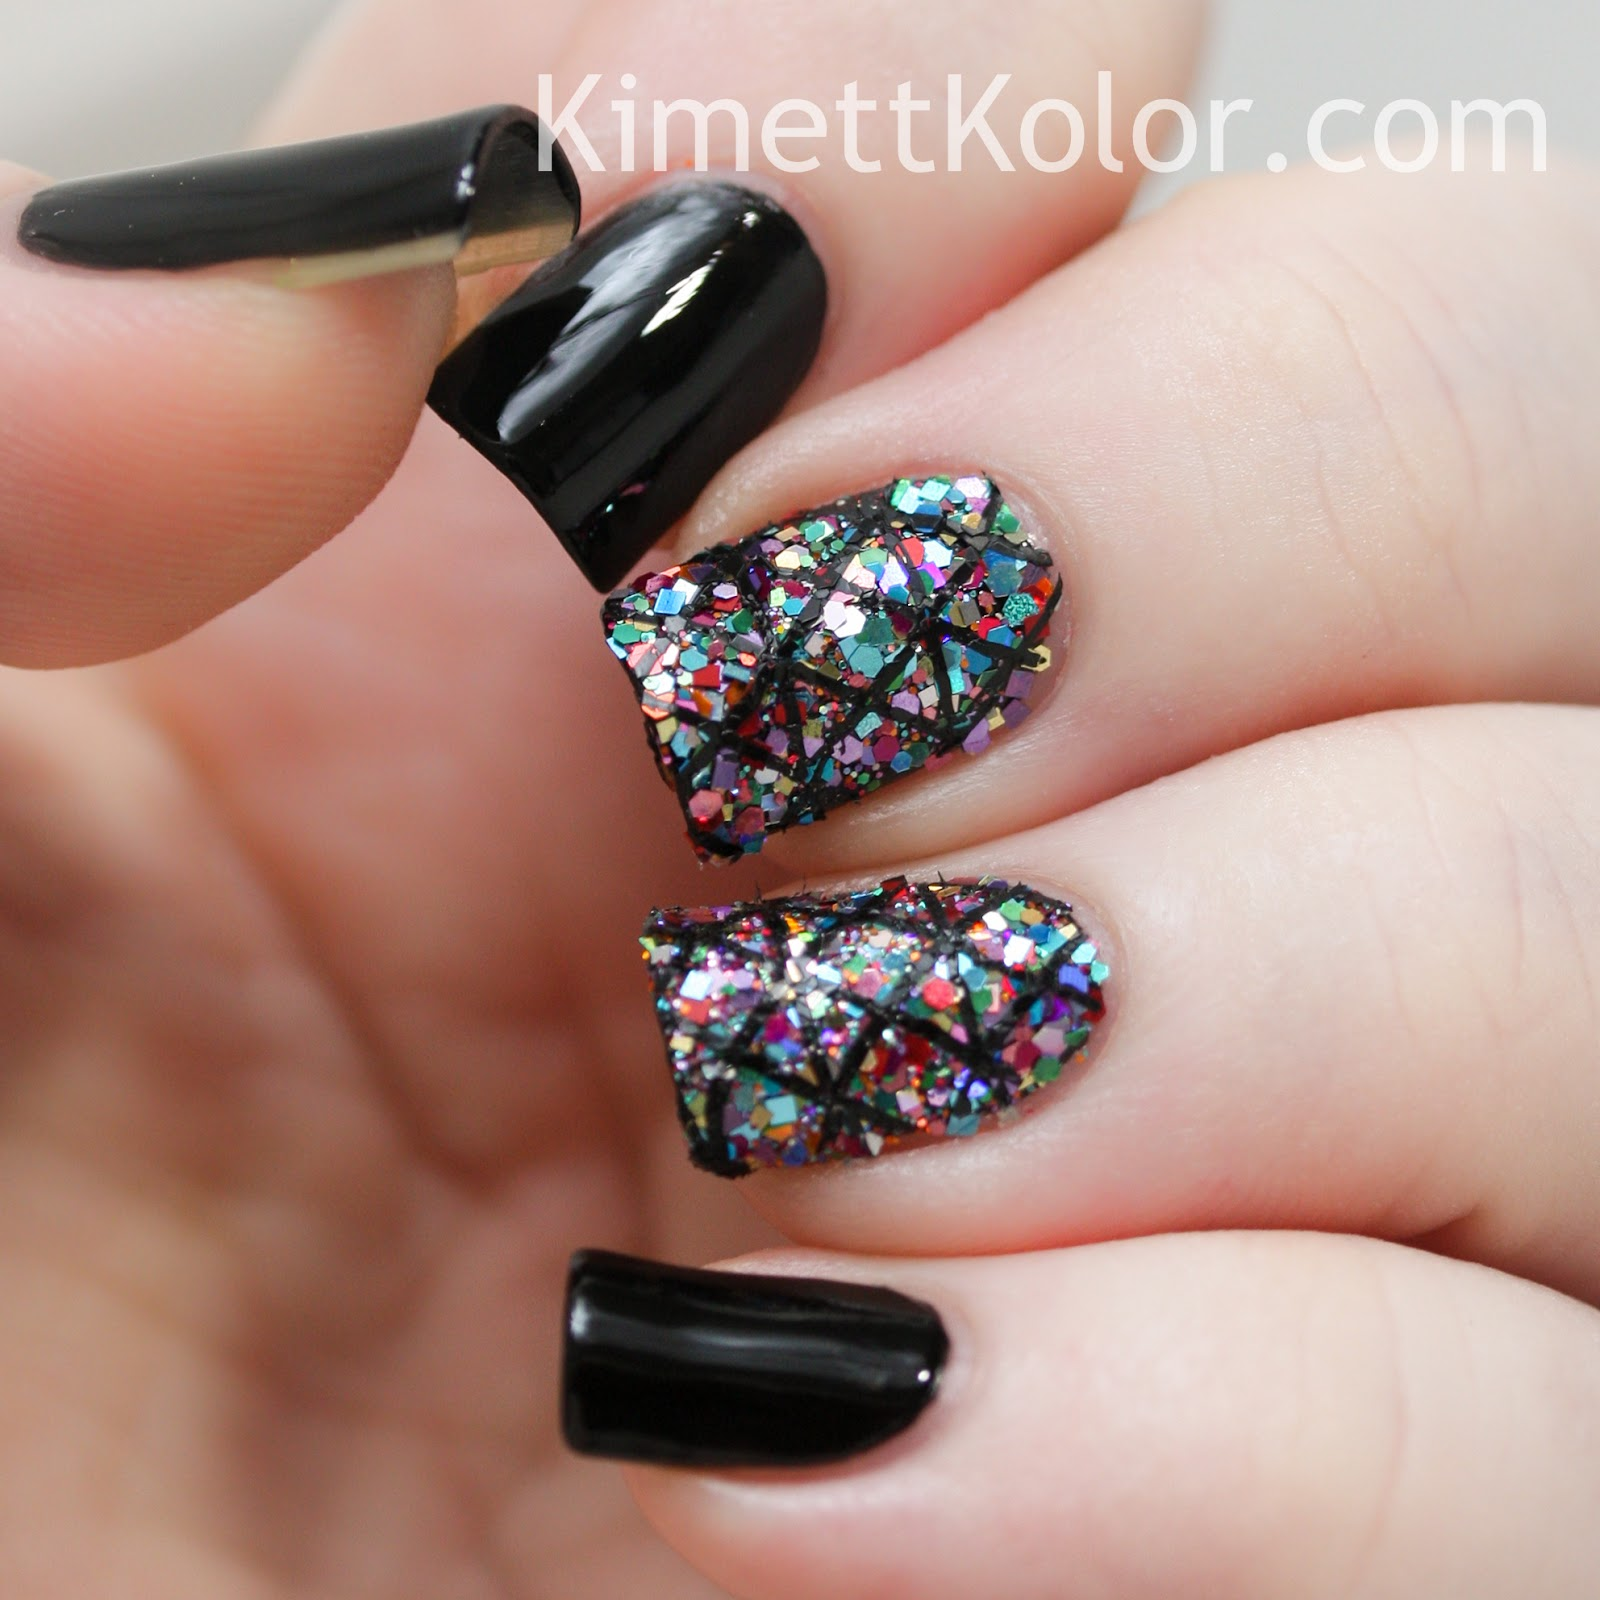 https://www.kimettkolor.com/2014/07/glitter-covered-nailswith-stamping.html